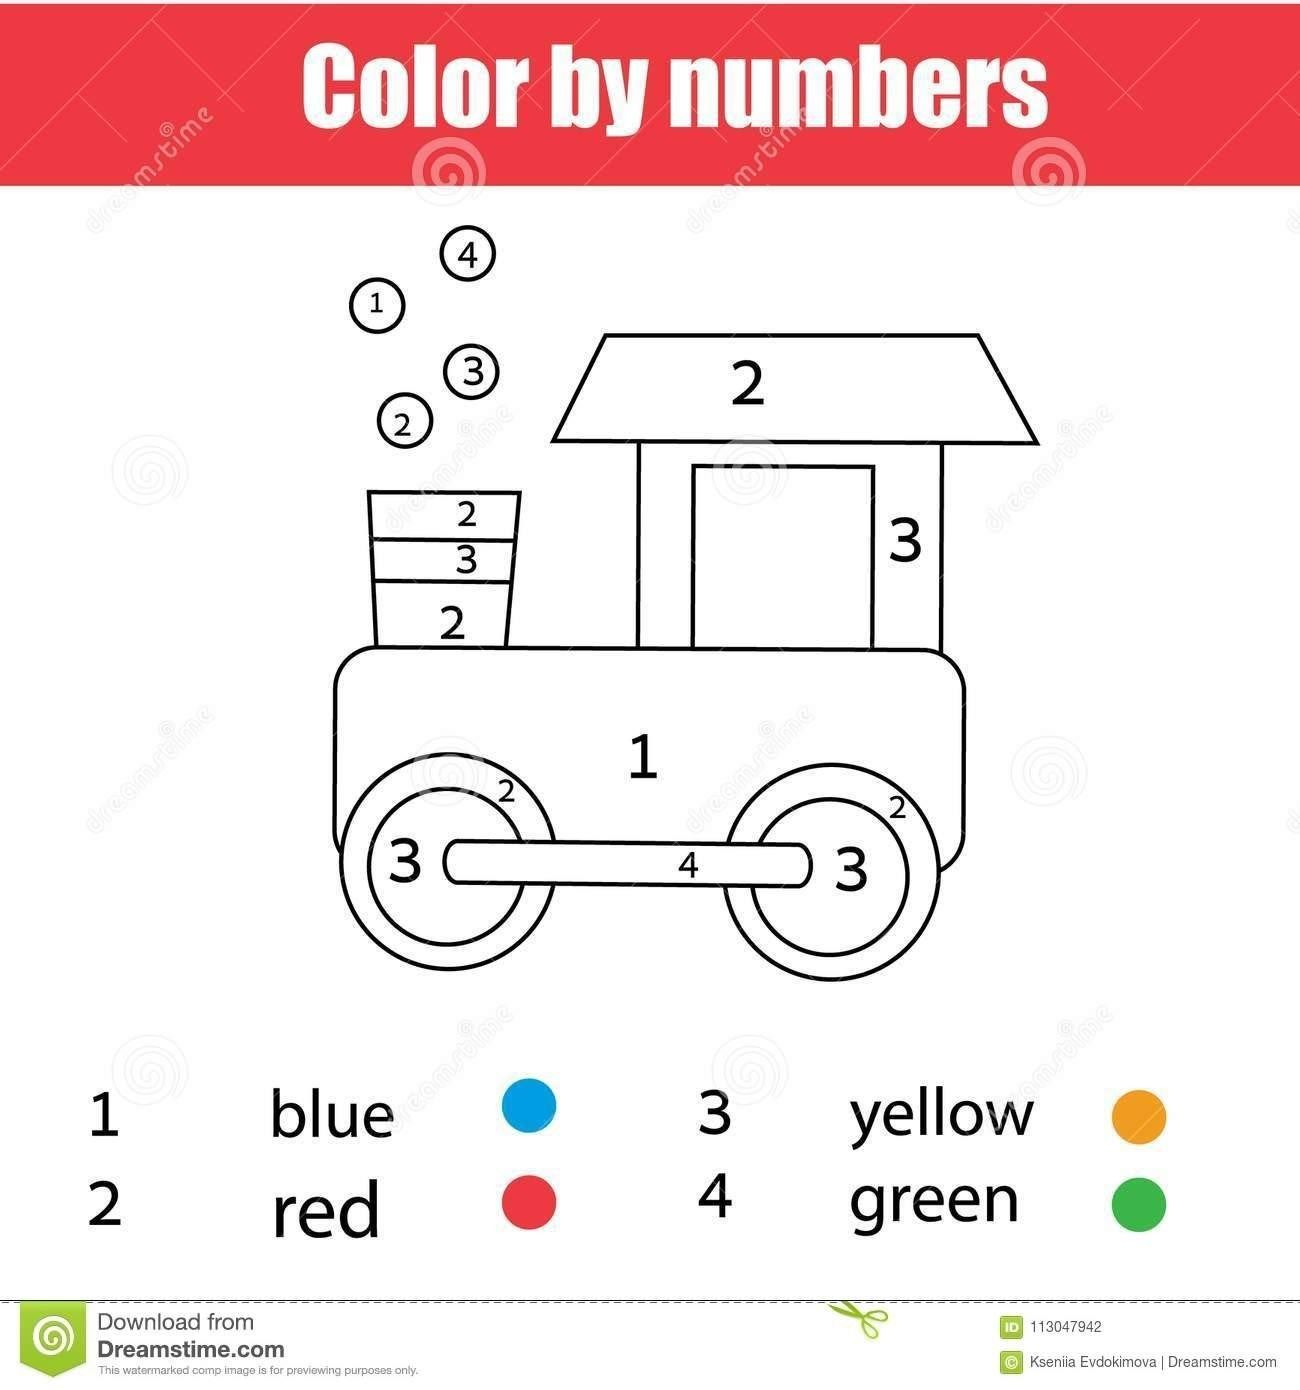 51 Printable Pictures For Kids To Color In